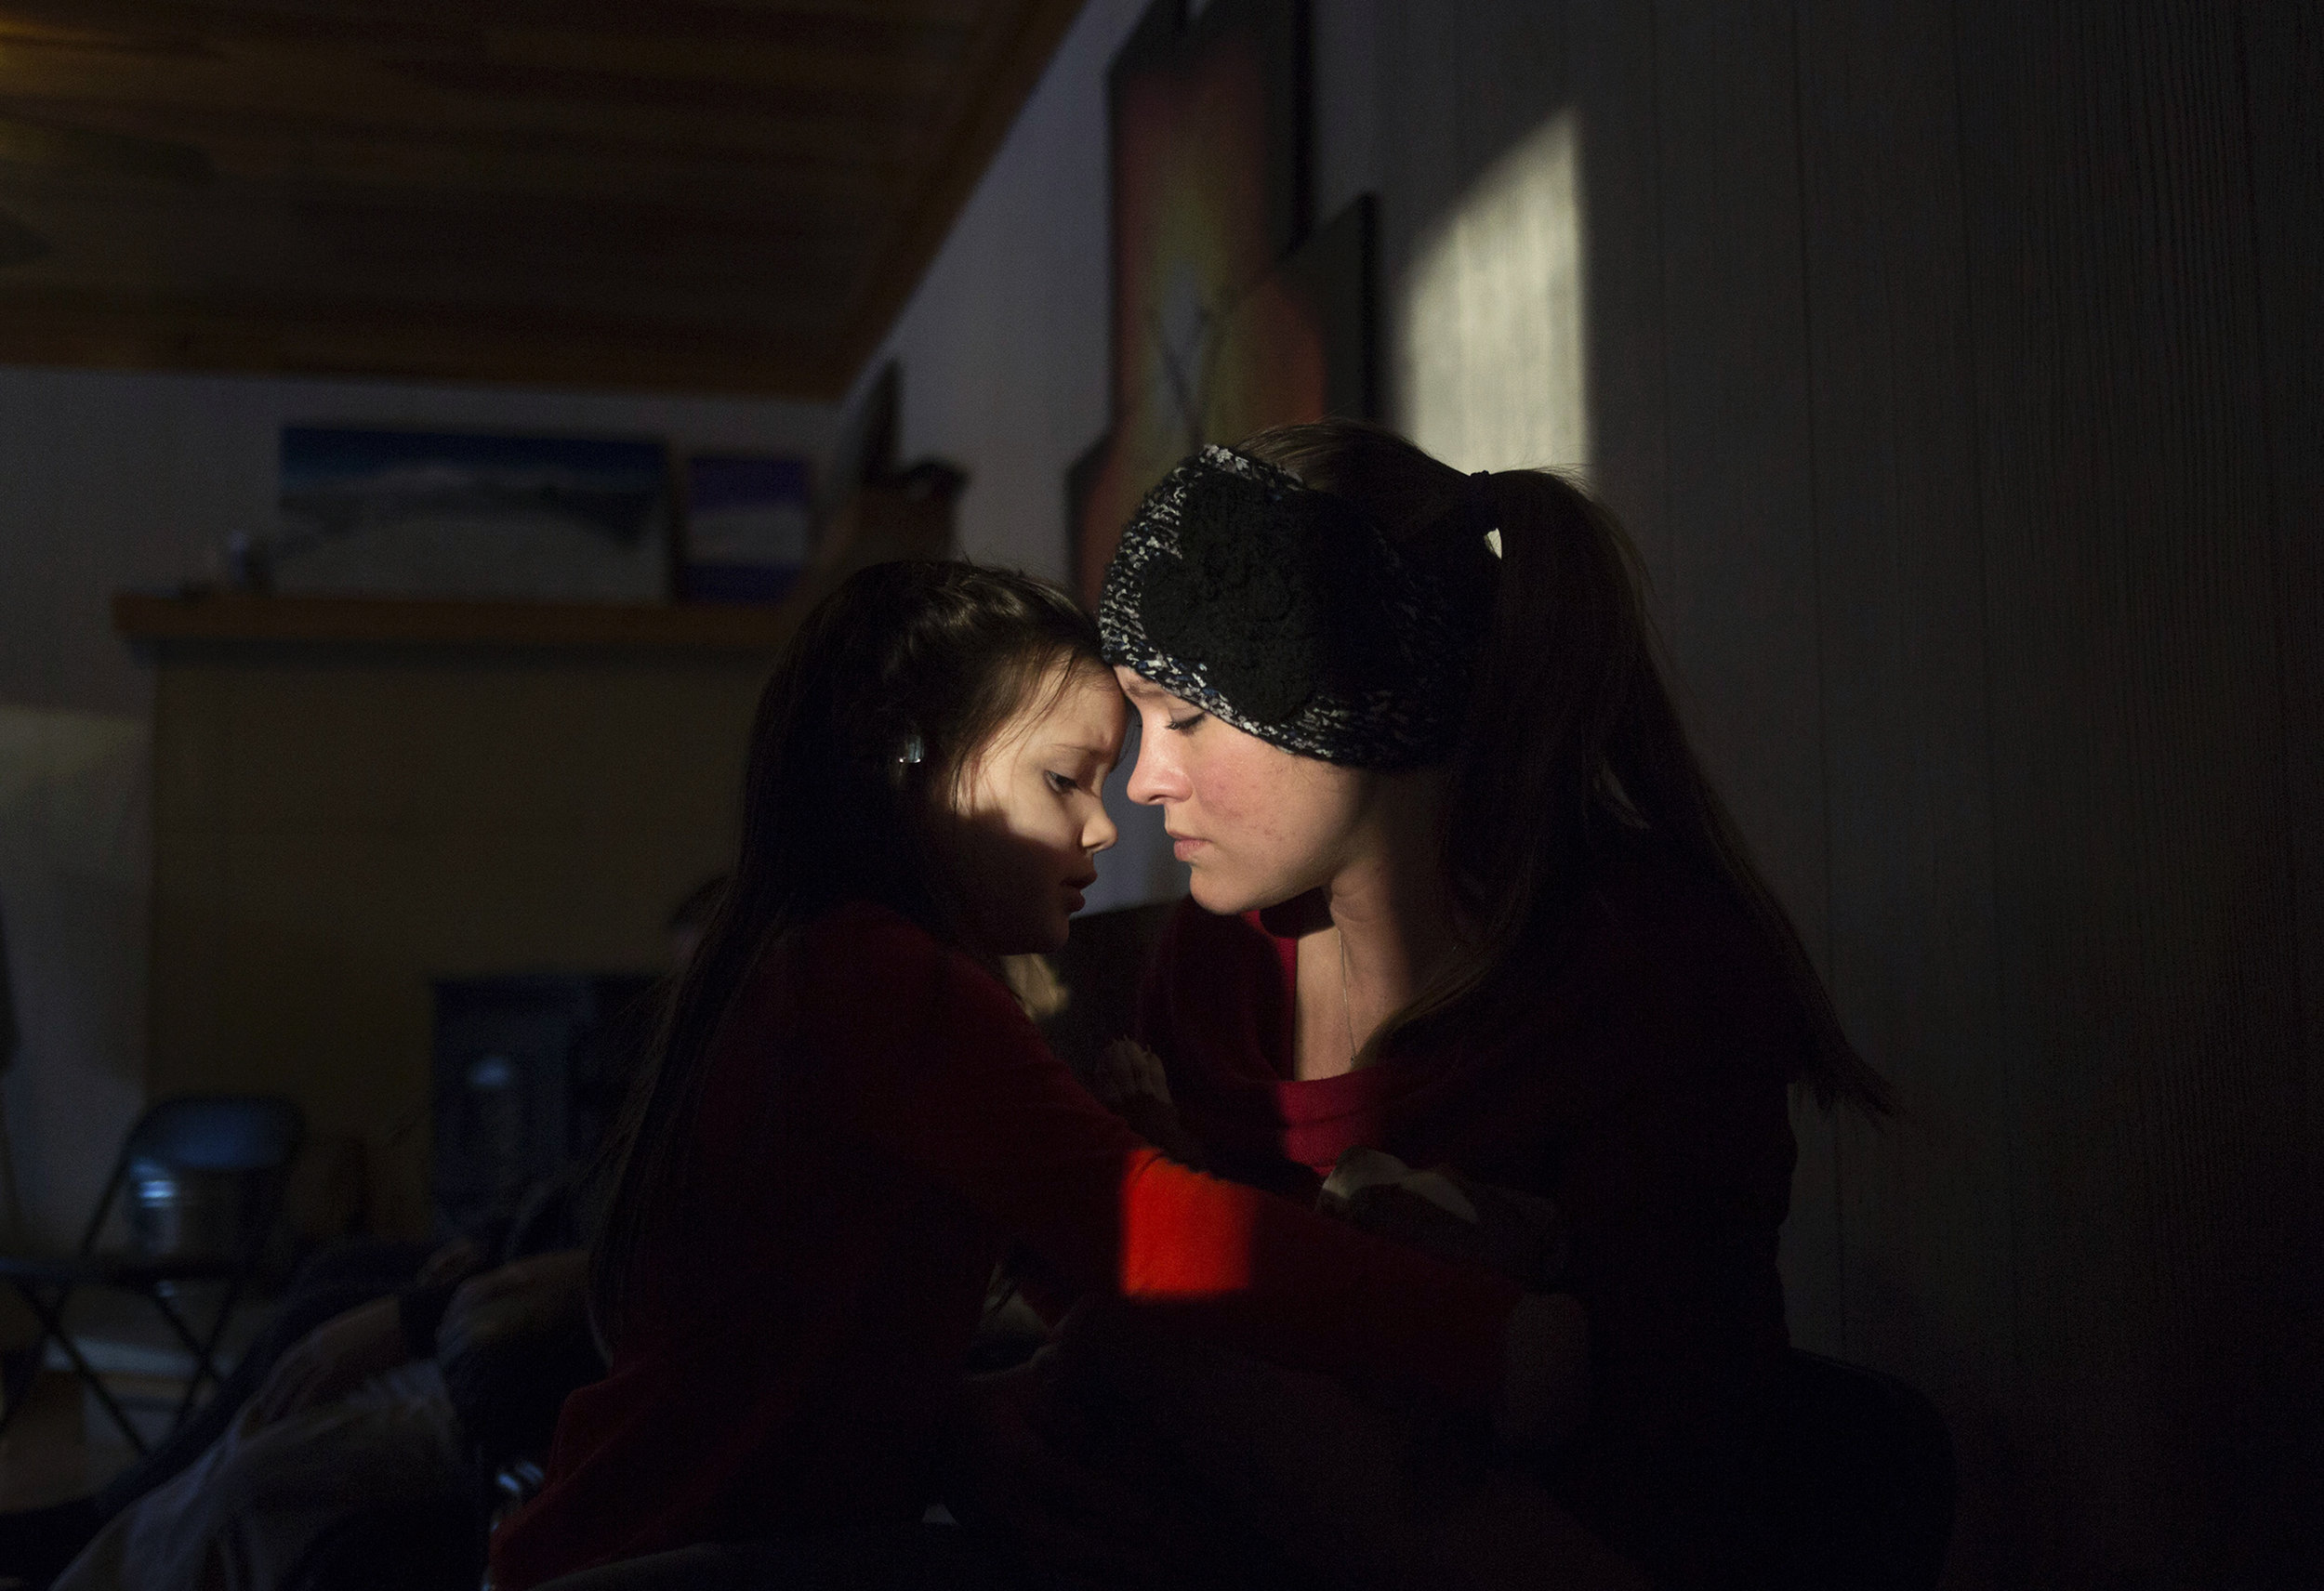 Shannon Long talks with her 4-year-old daughter, Hope, after having lunch with her extended family in West Paris, Maine. Long is six months into recovery from an addiction to heroin and opioids. She started abusing pills as a teenager in her rural Maine town.